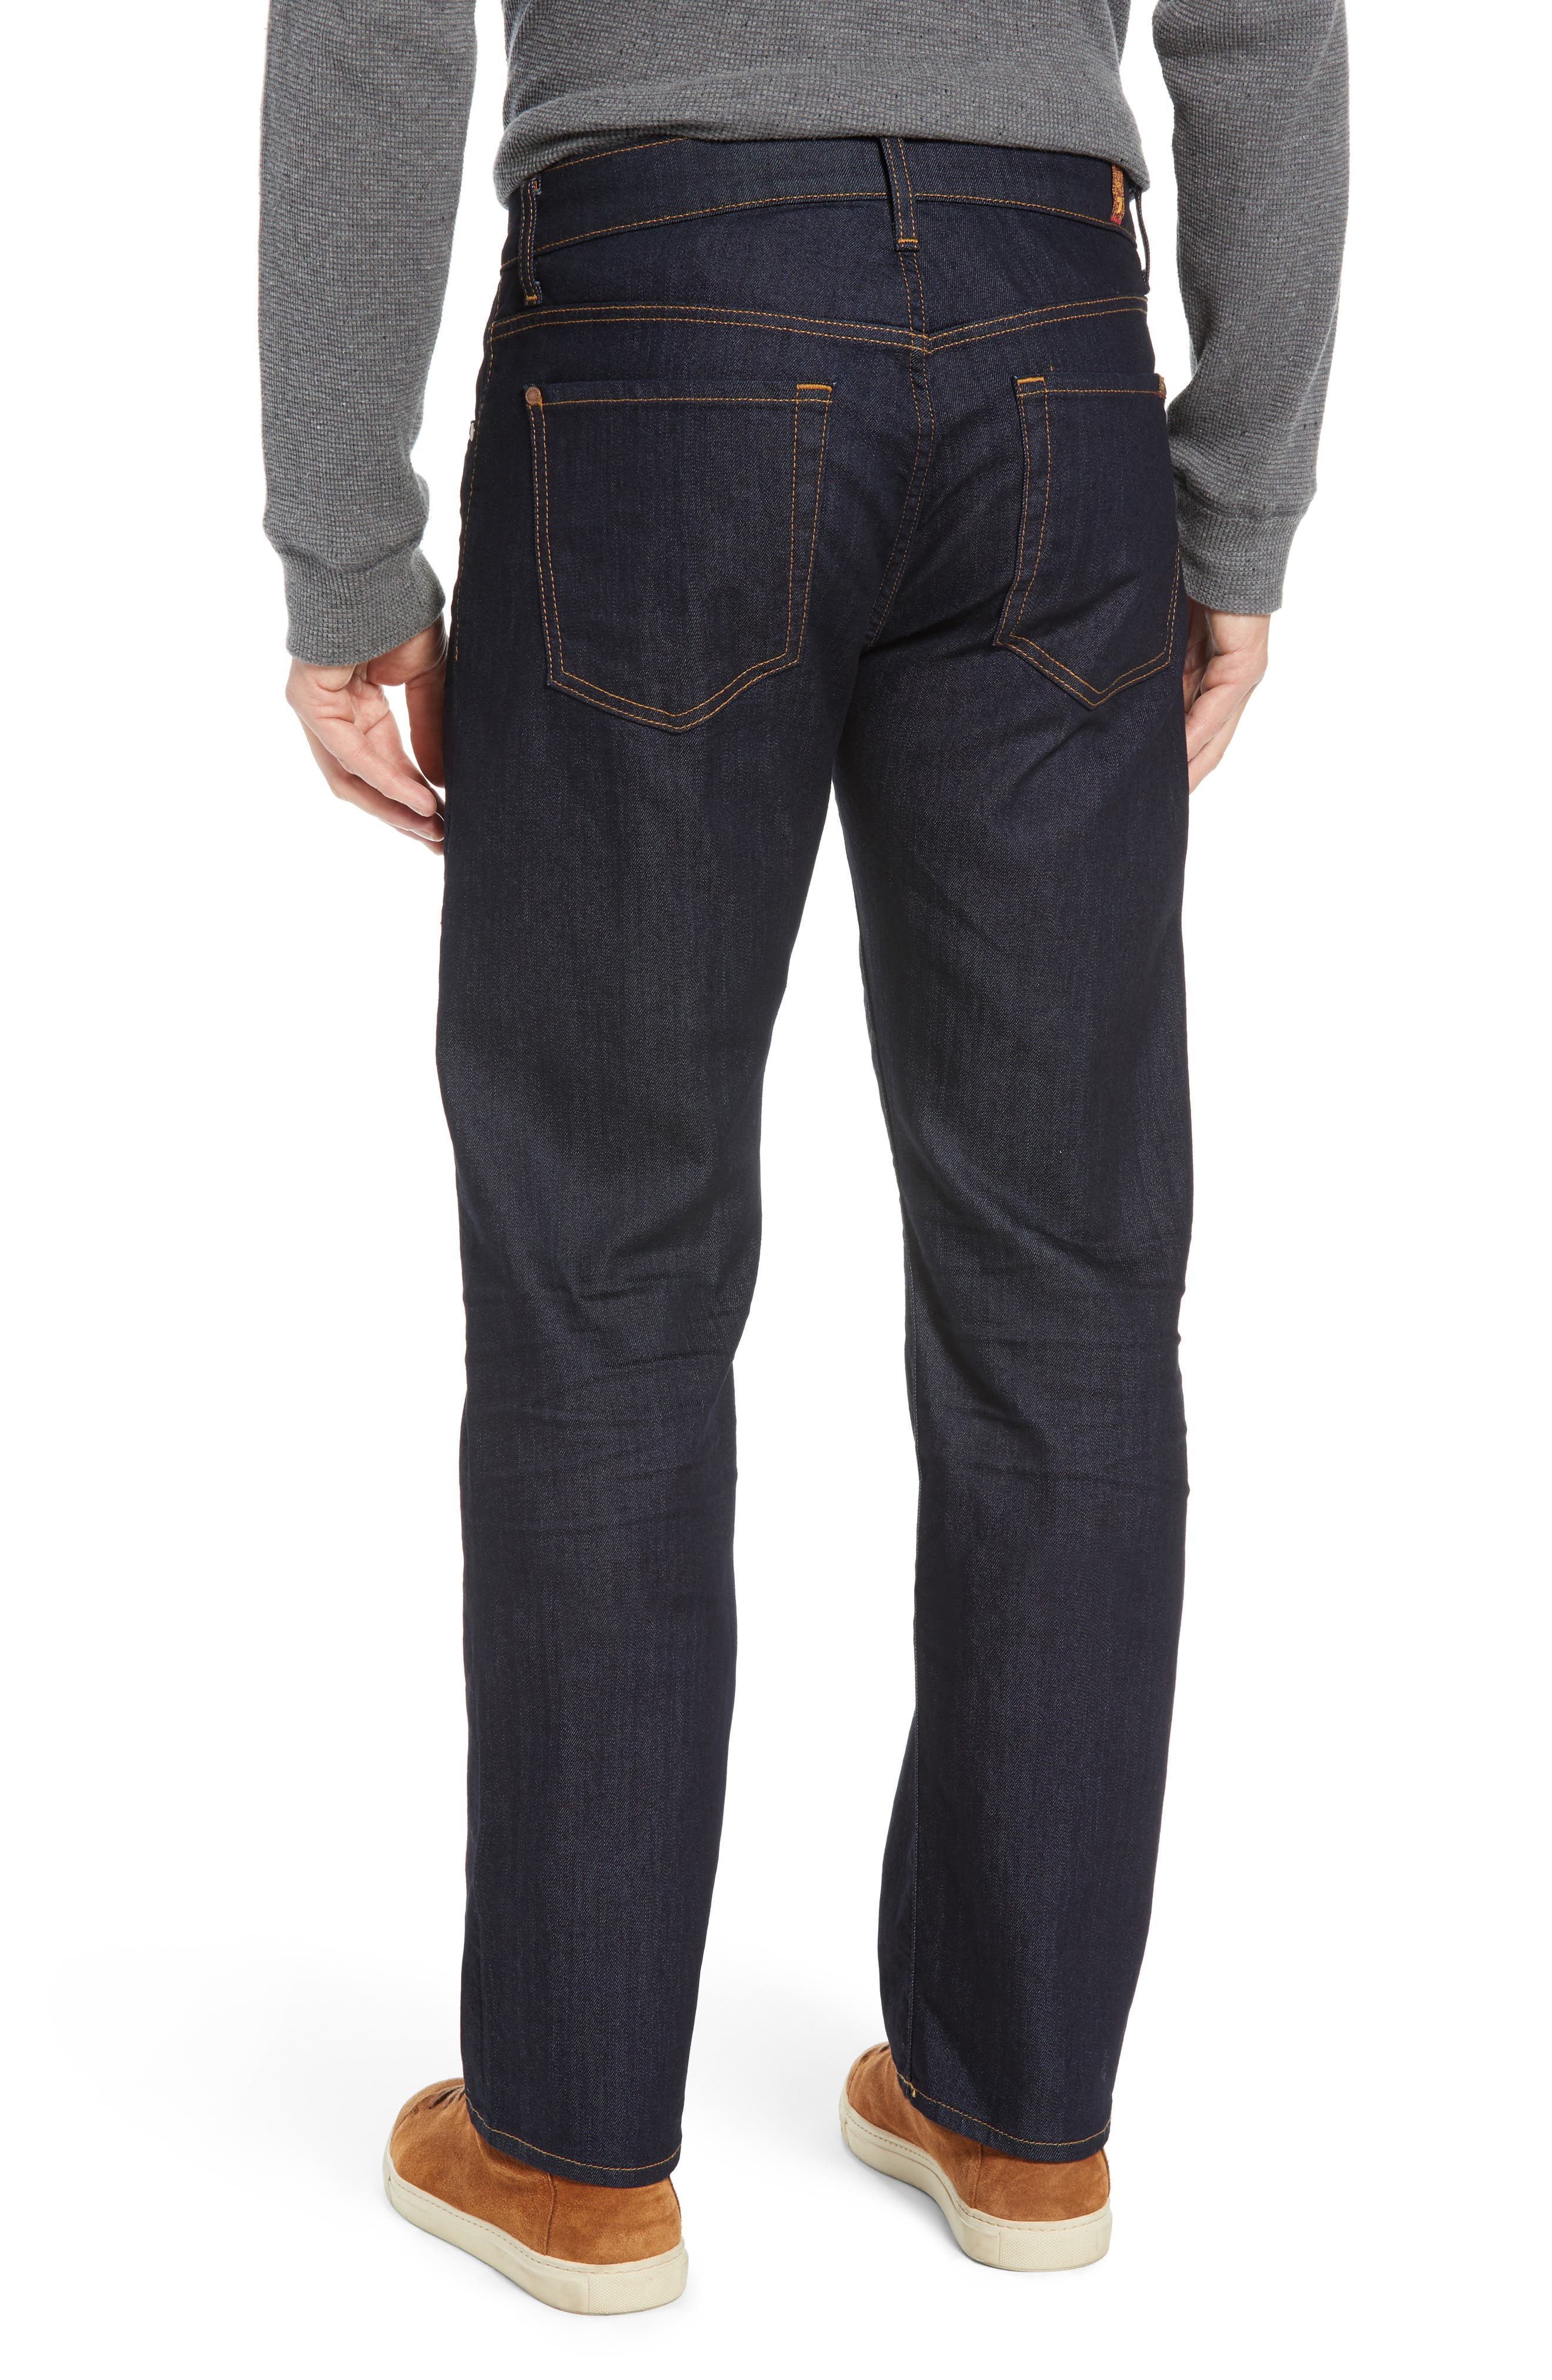 Austyn Airweft Relaxed Straight Leg Jeans,                             Alternate thumbnail 2, color,                             CAVEAT